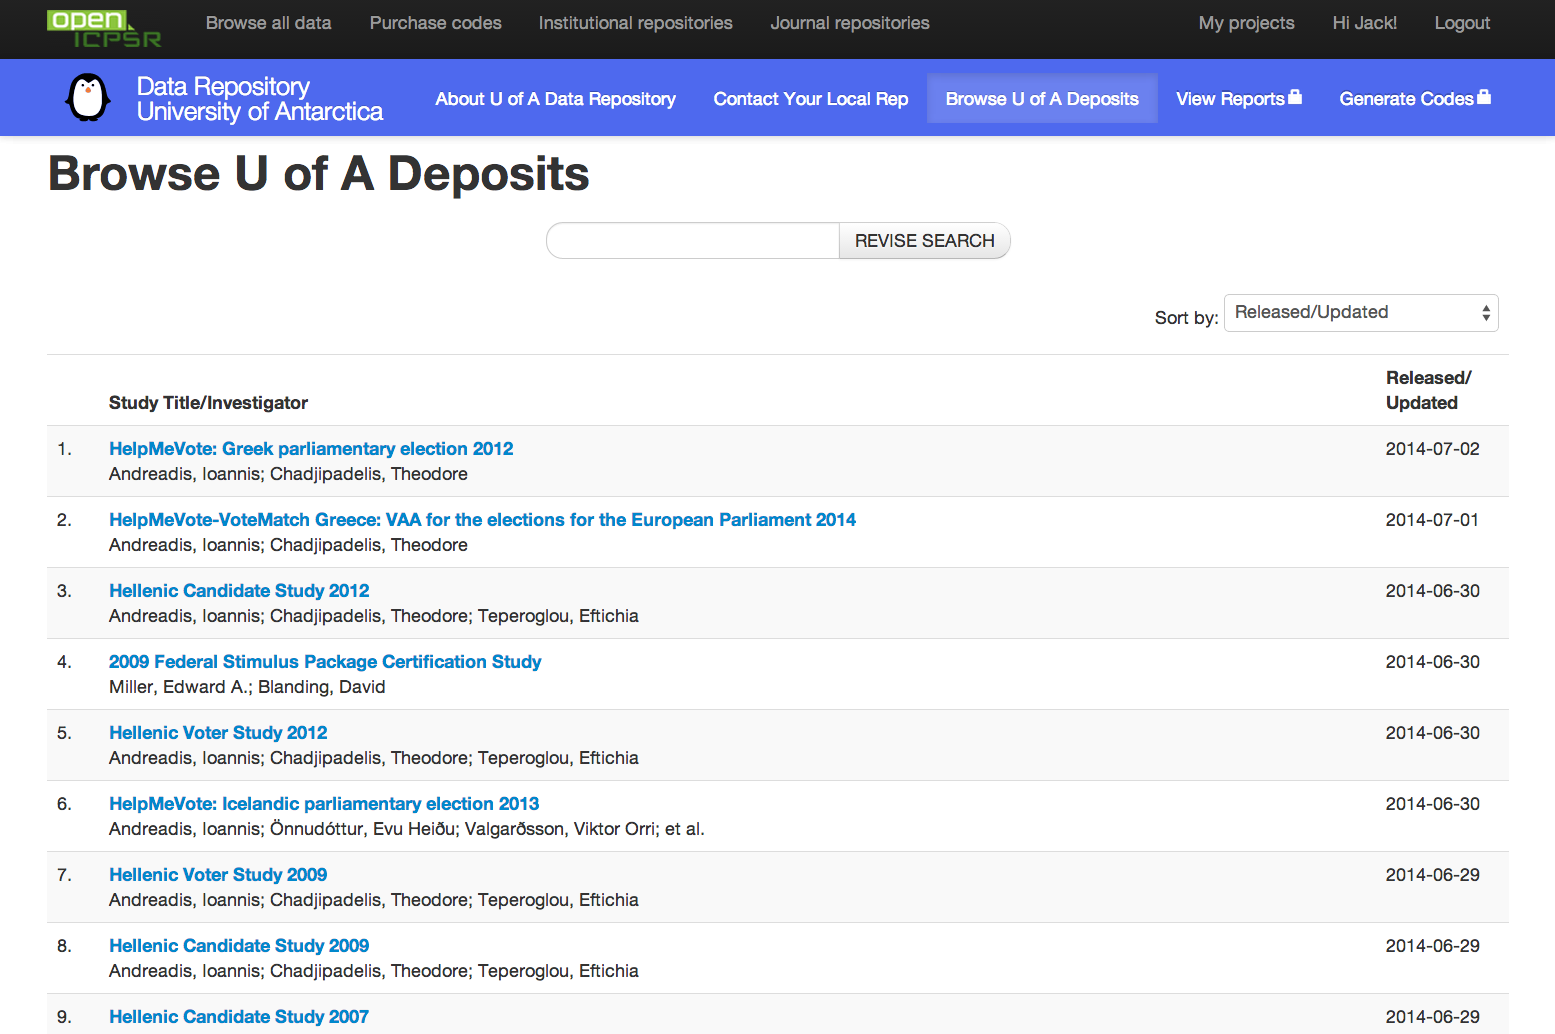 Screenshot of Browse Deposits page